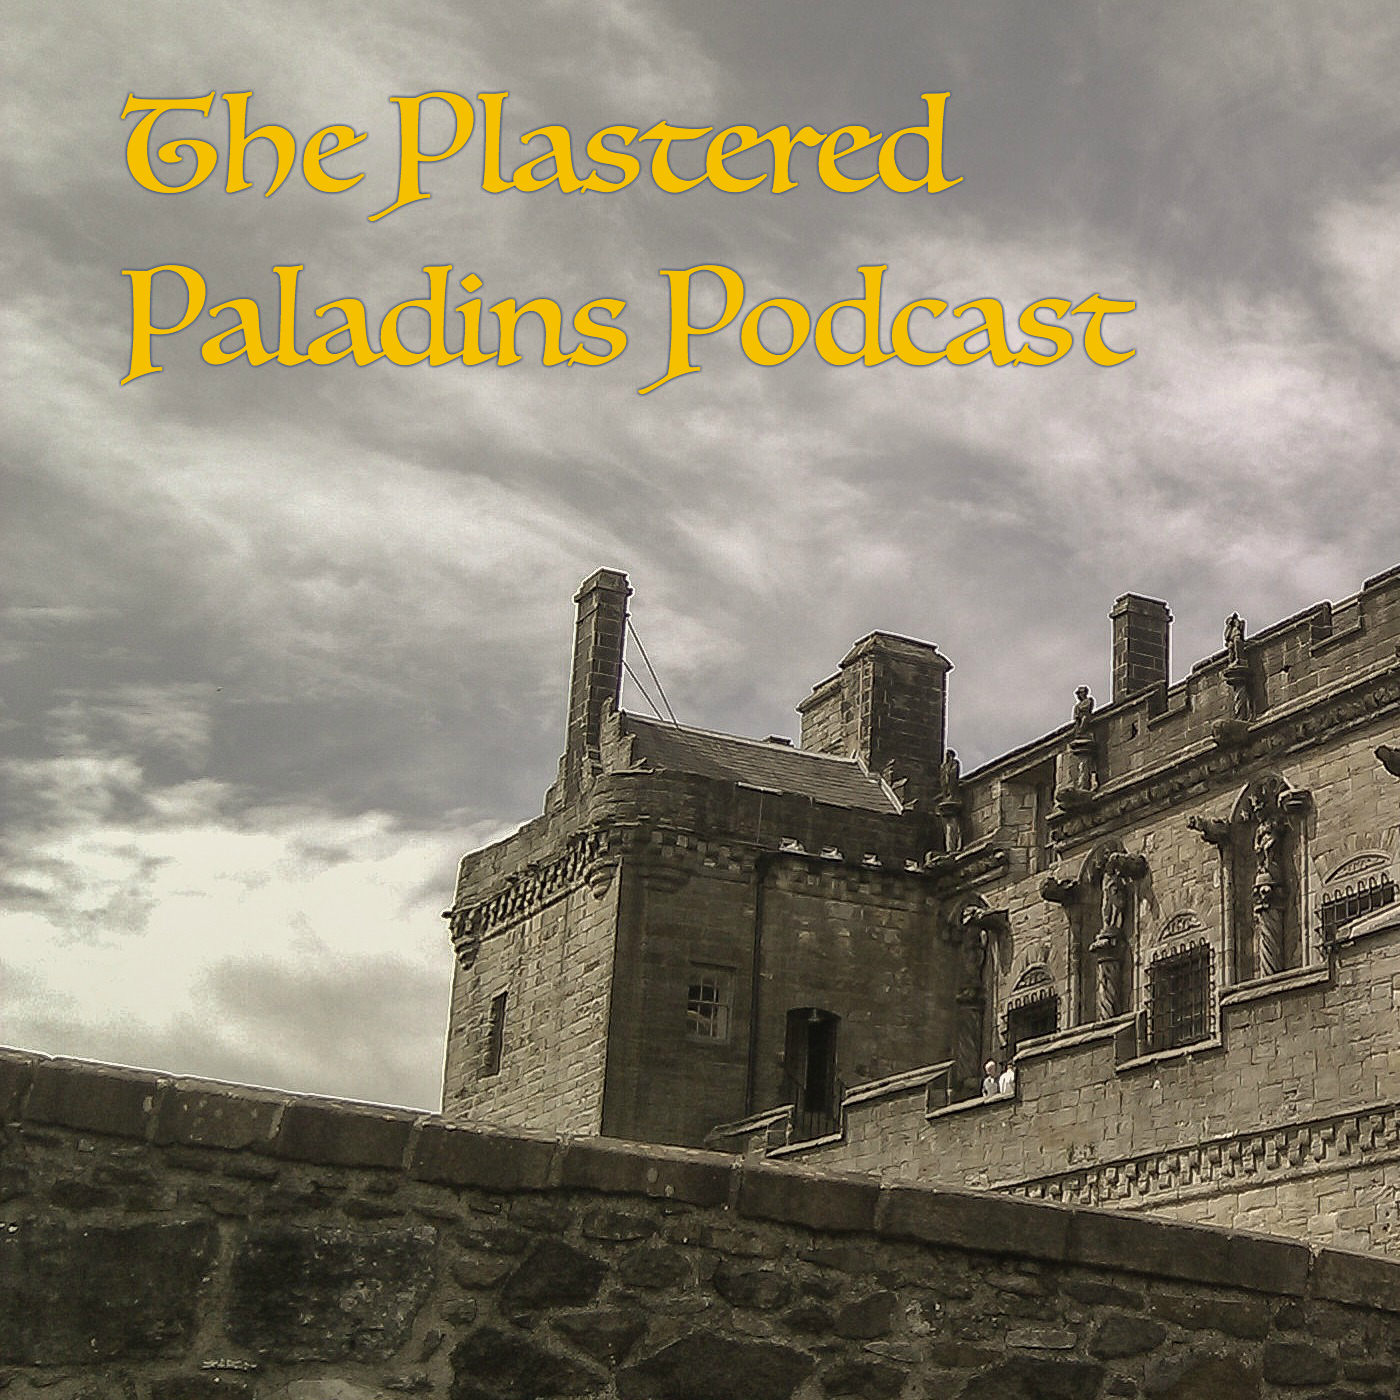 The Plastered Paladins Episode 22: The Three Musketeers